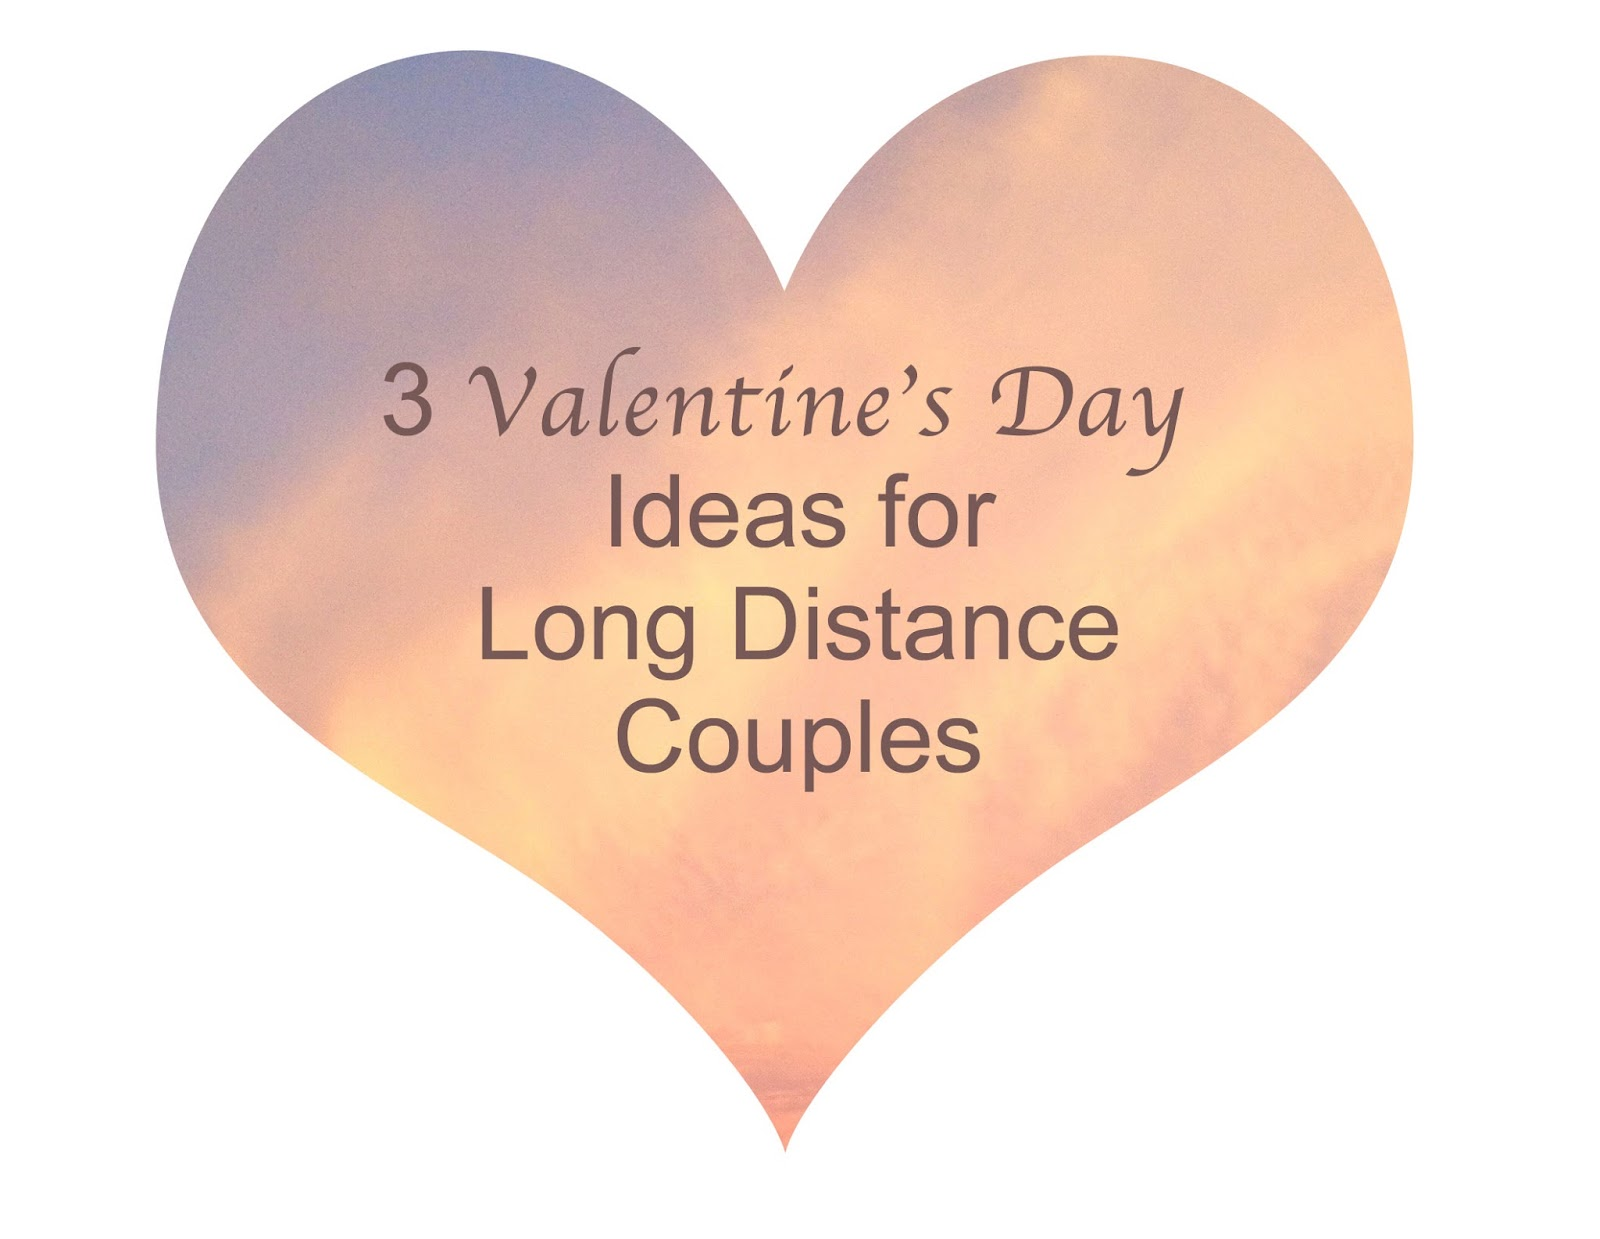 Meet Me In Midtown: 3 Valentine's Day Ideas for Long Distance Couples